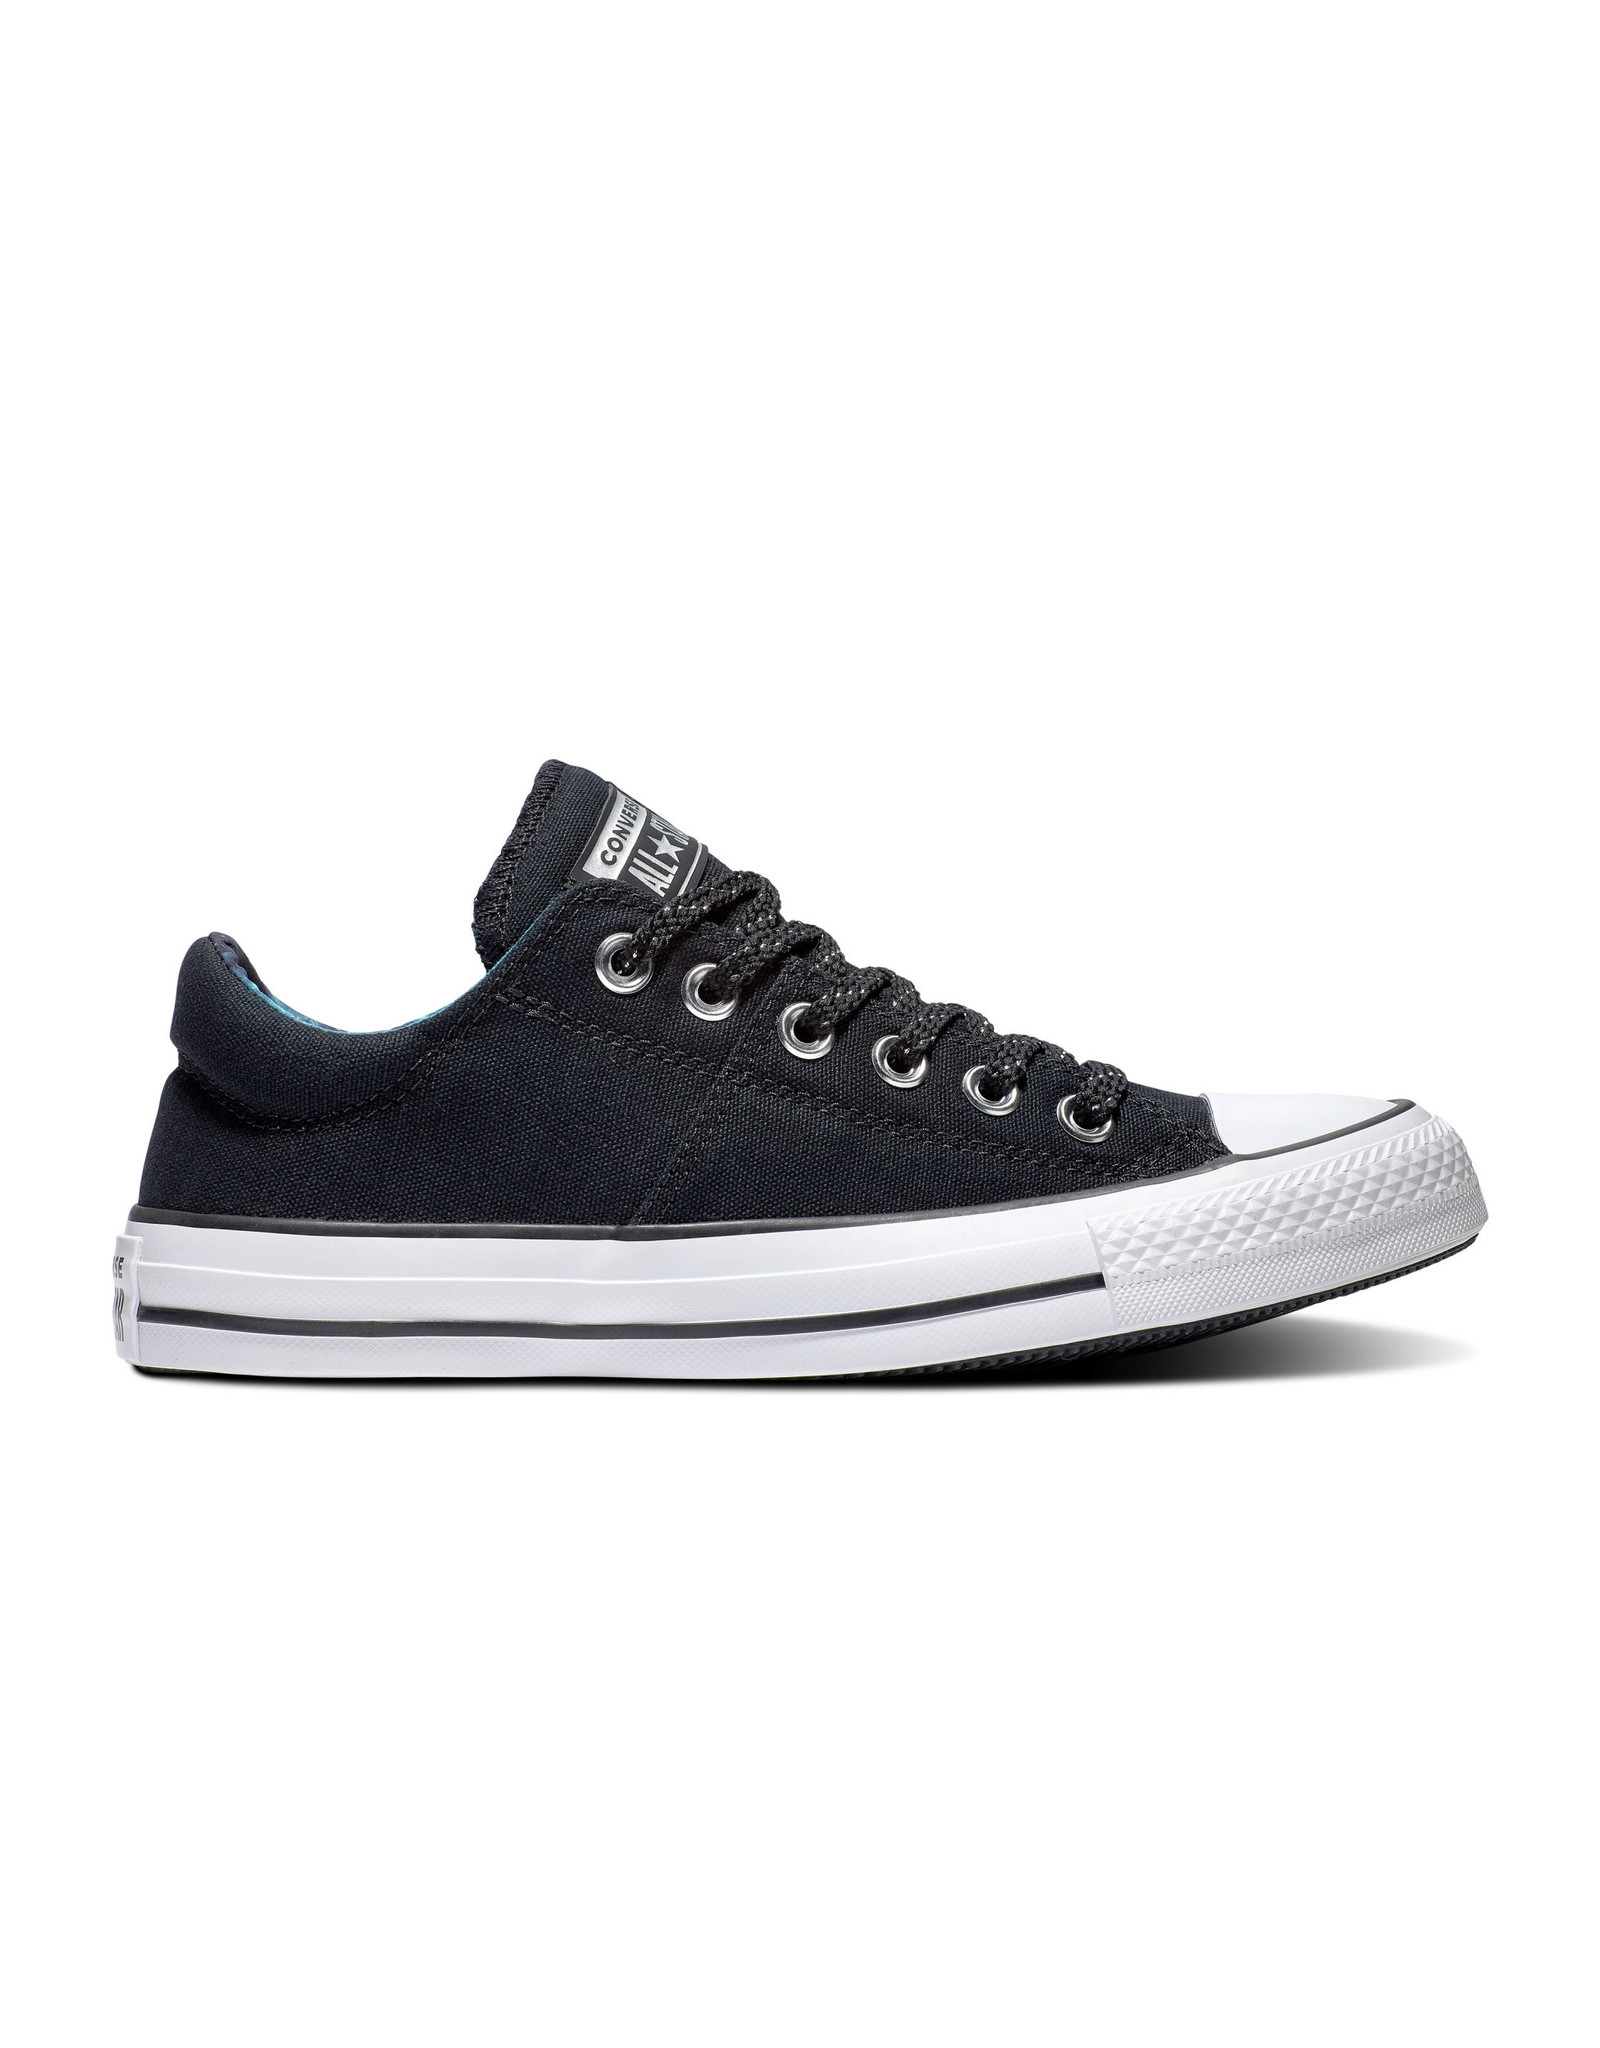 CONVERSE CHUCK TAYLOR ALL STAR MADISON OX BLACK/WHITE/BLACK C13MAB-565223C